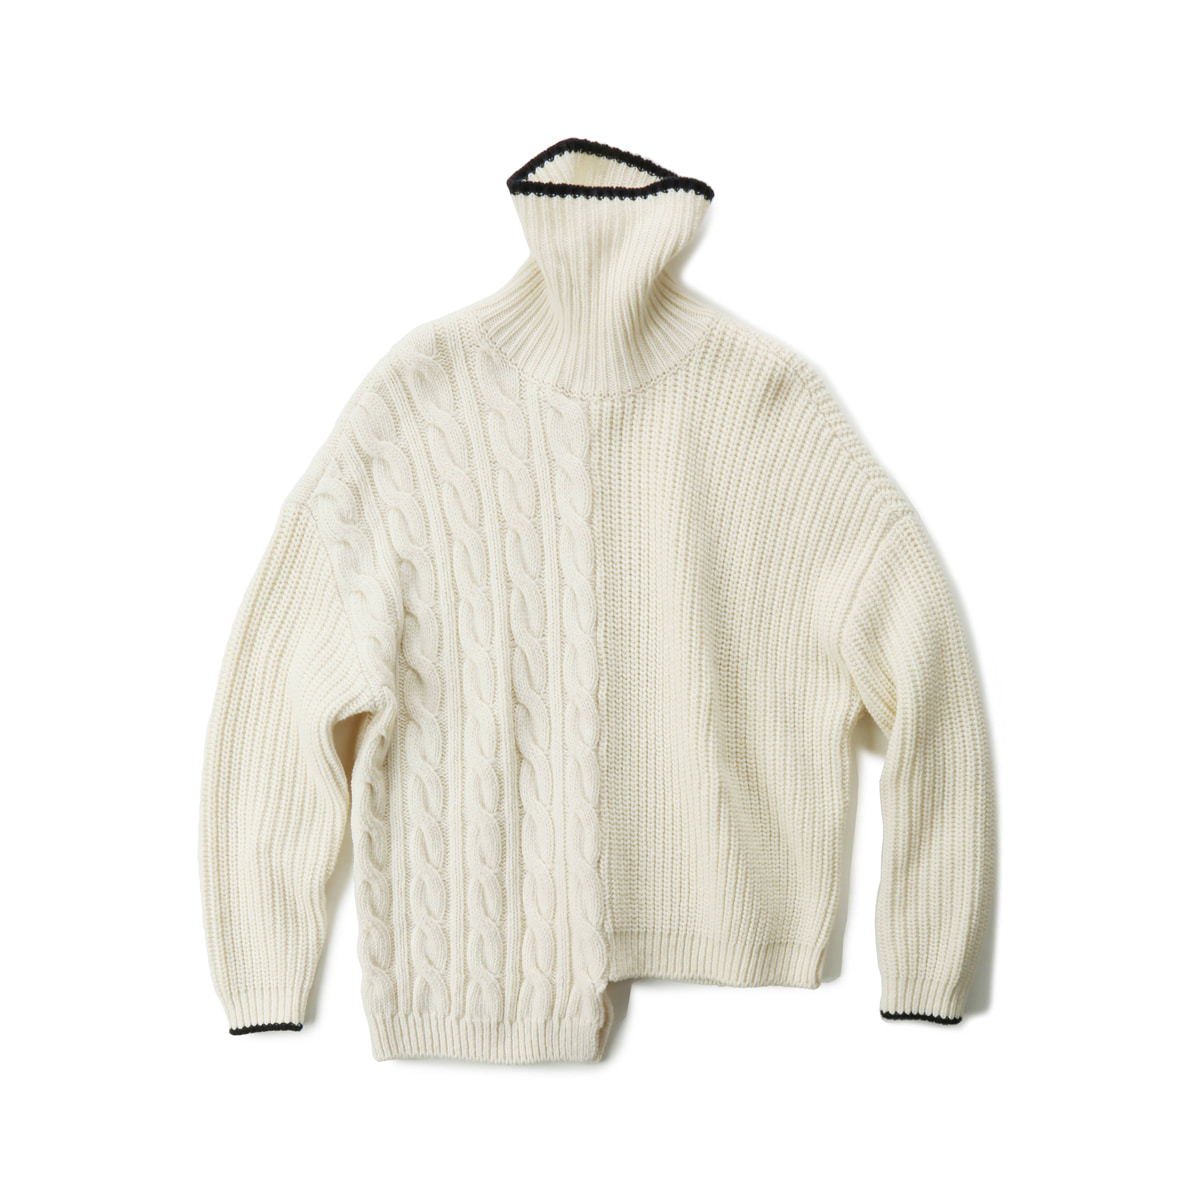 [MUSED] TRES UNBALANCED TURTLENECK SWEATER 'IVORY/NAVY'